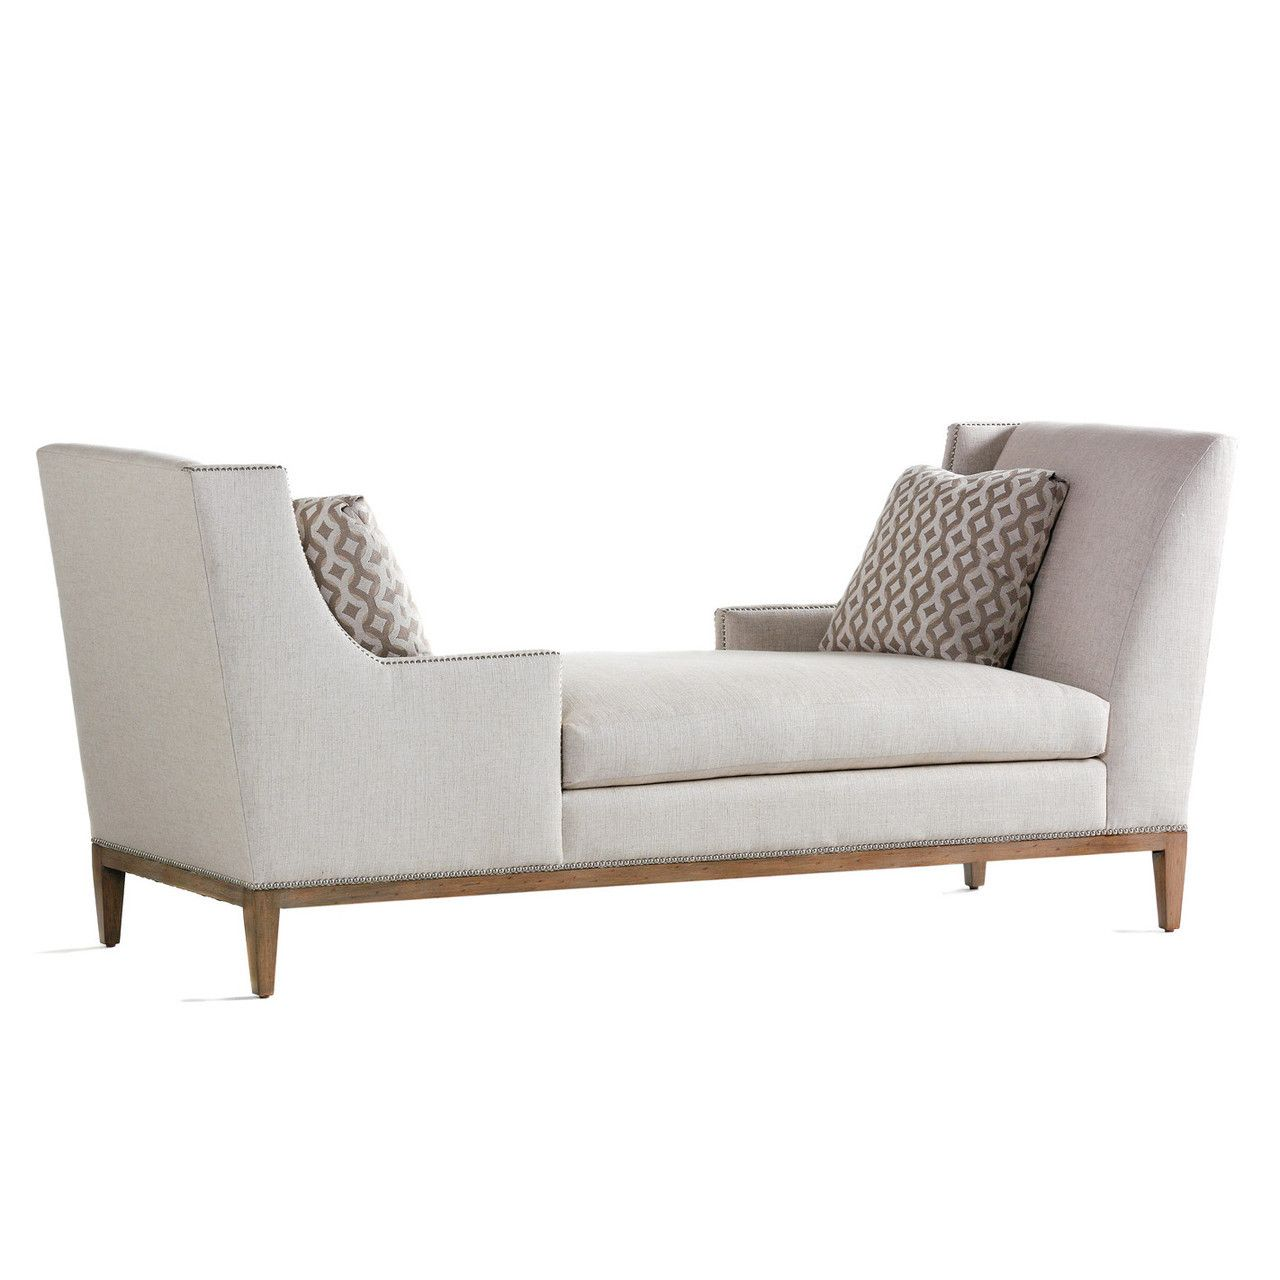 Two Sided Chaise Lounge Shapeyourminds Com